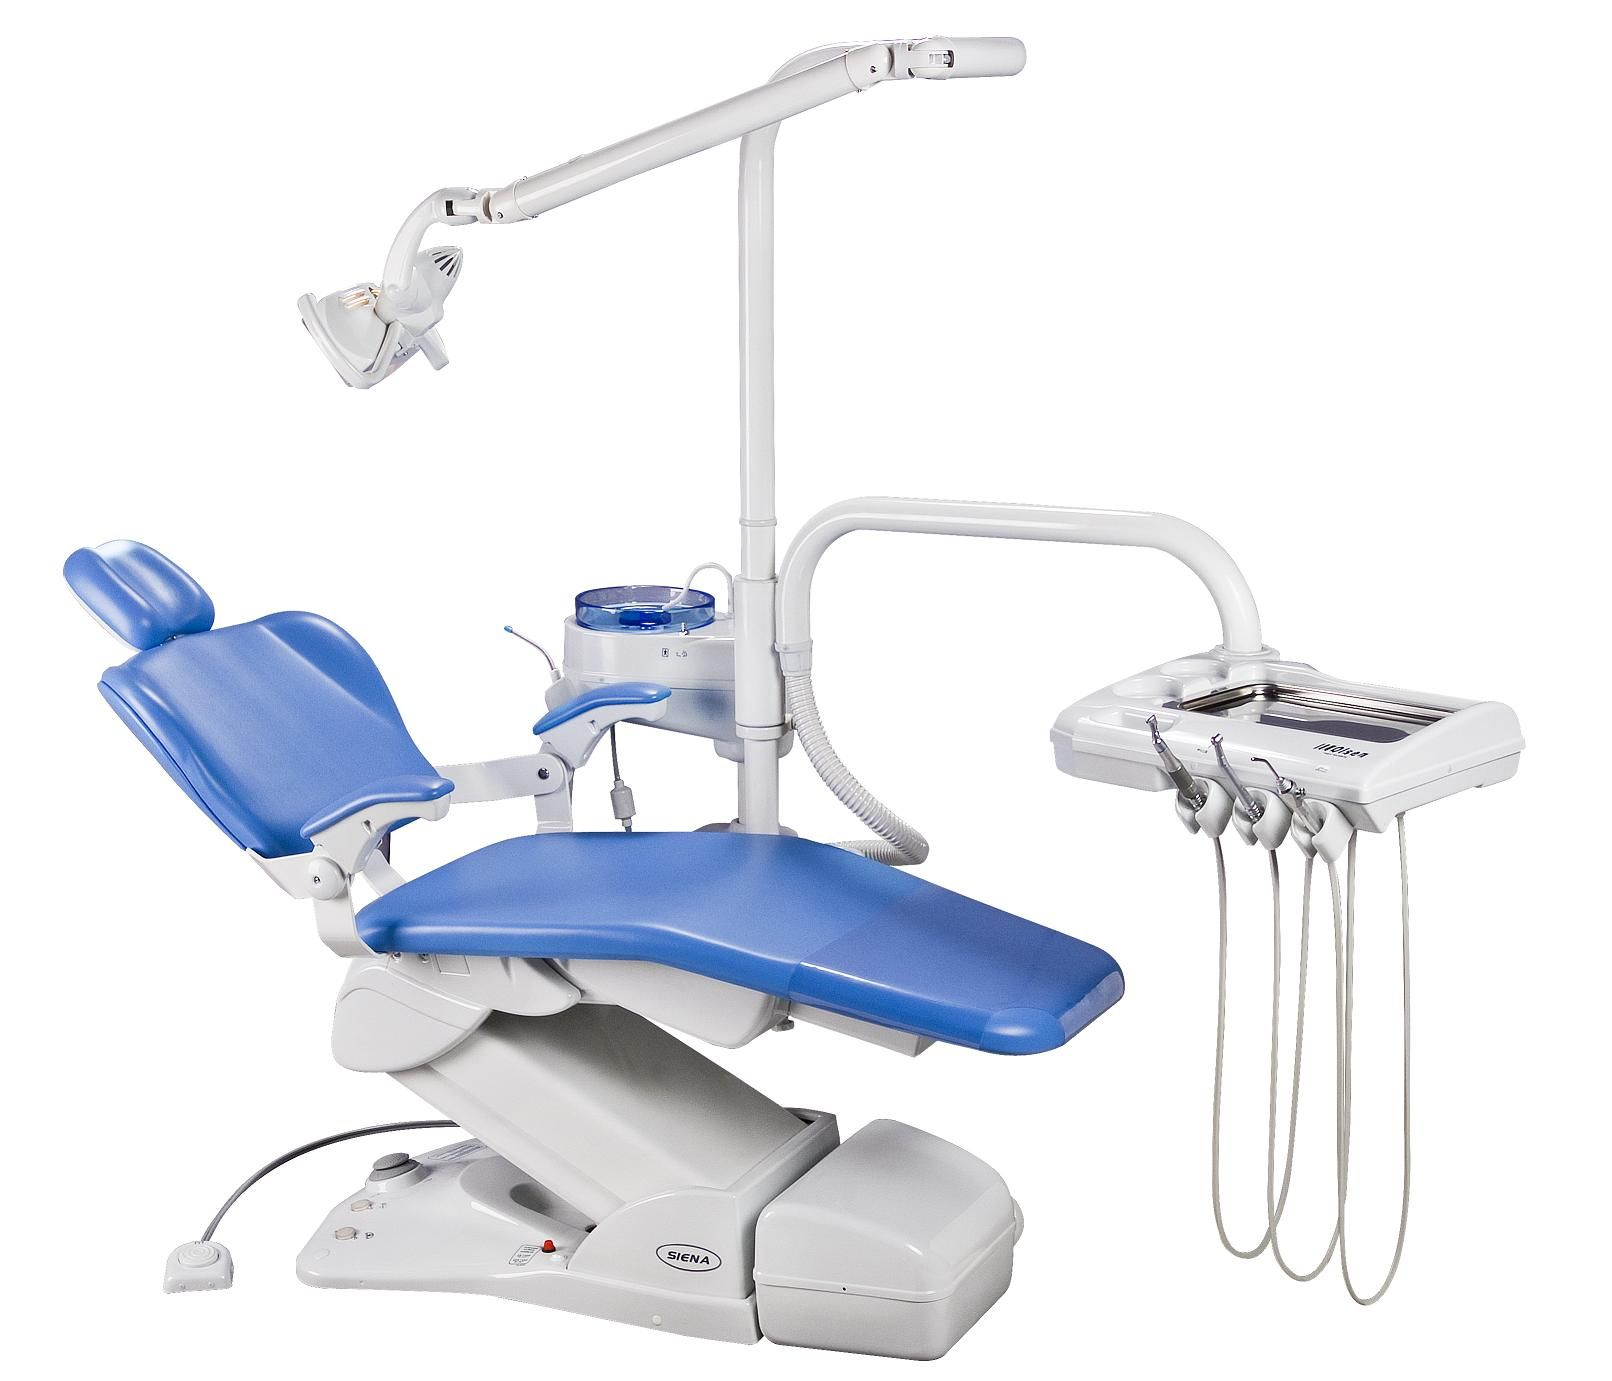 alibaba dentist on detail yoshida com buy chair dental product